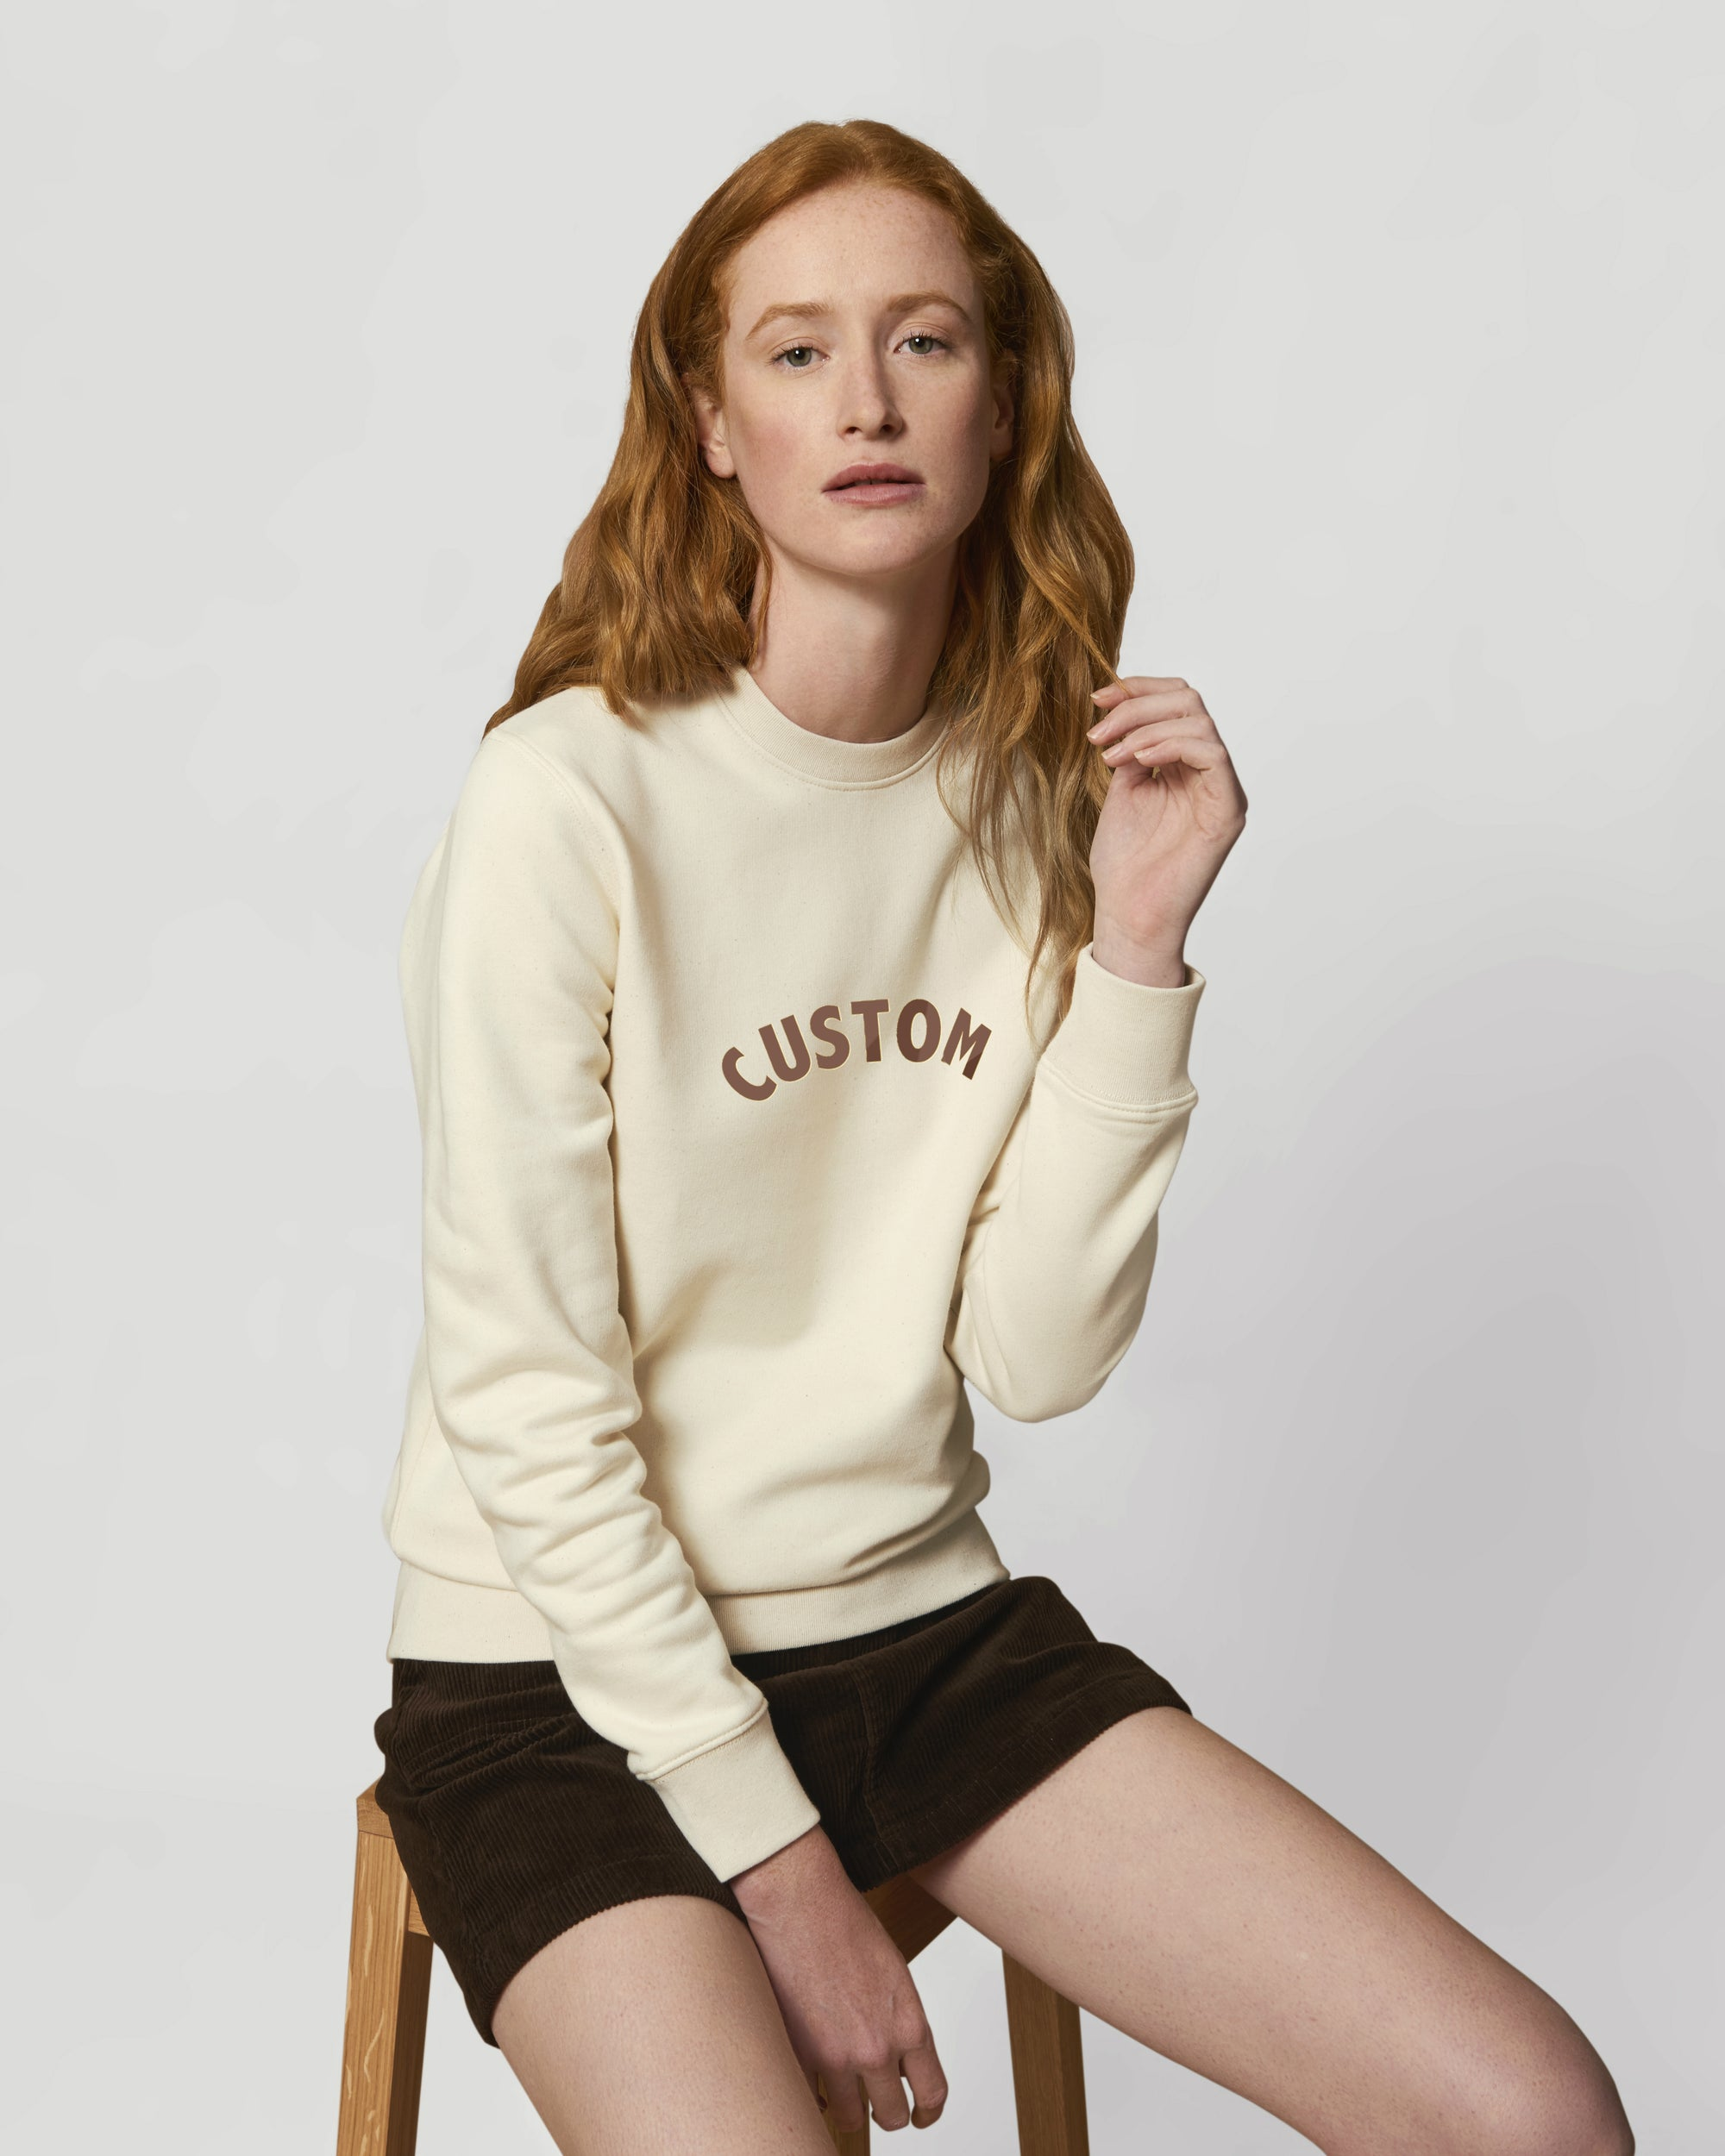 WOMEN'S BRUSHED ORGANIC COTTON CREW NECK 'CHANGER' SWEATSHIRT - customisable centre chest embroidery